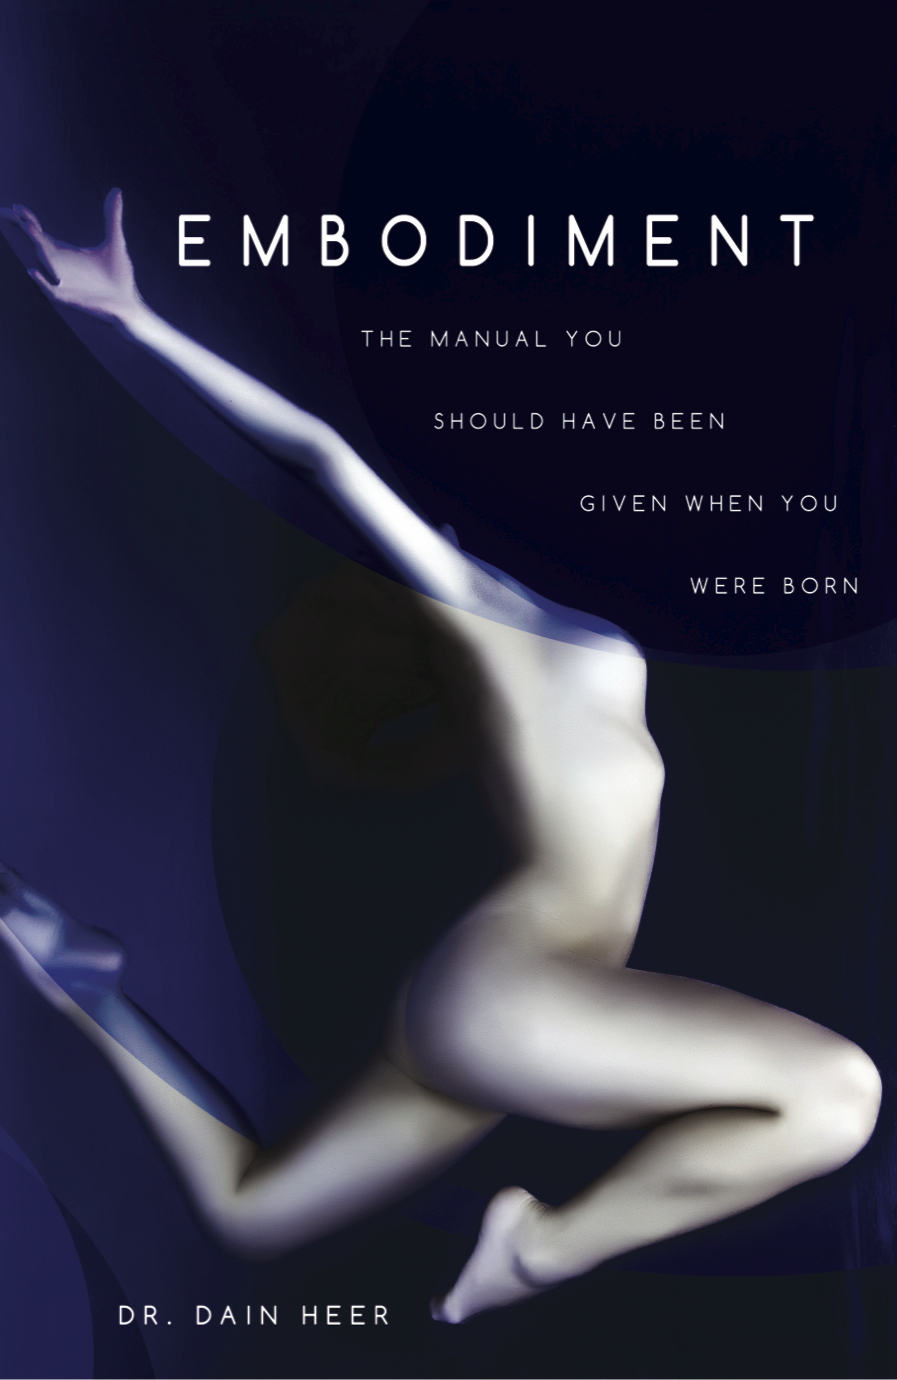 Embodiment: The Manual You Should Have Been Given When You Were Born -BOOK